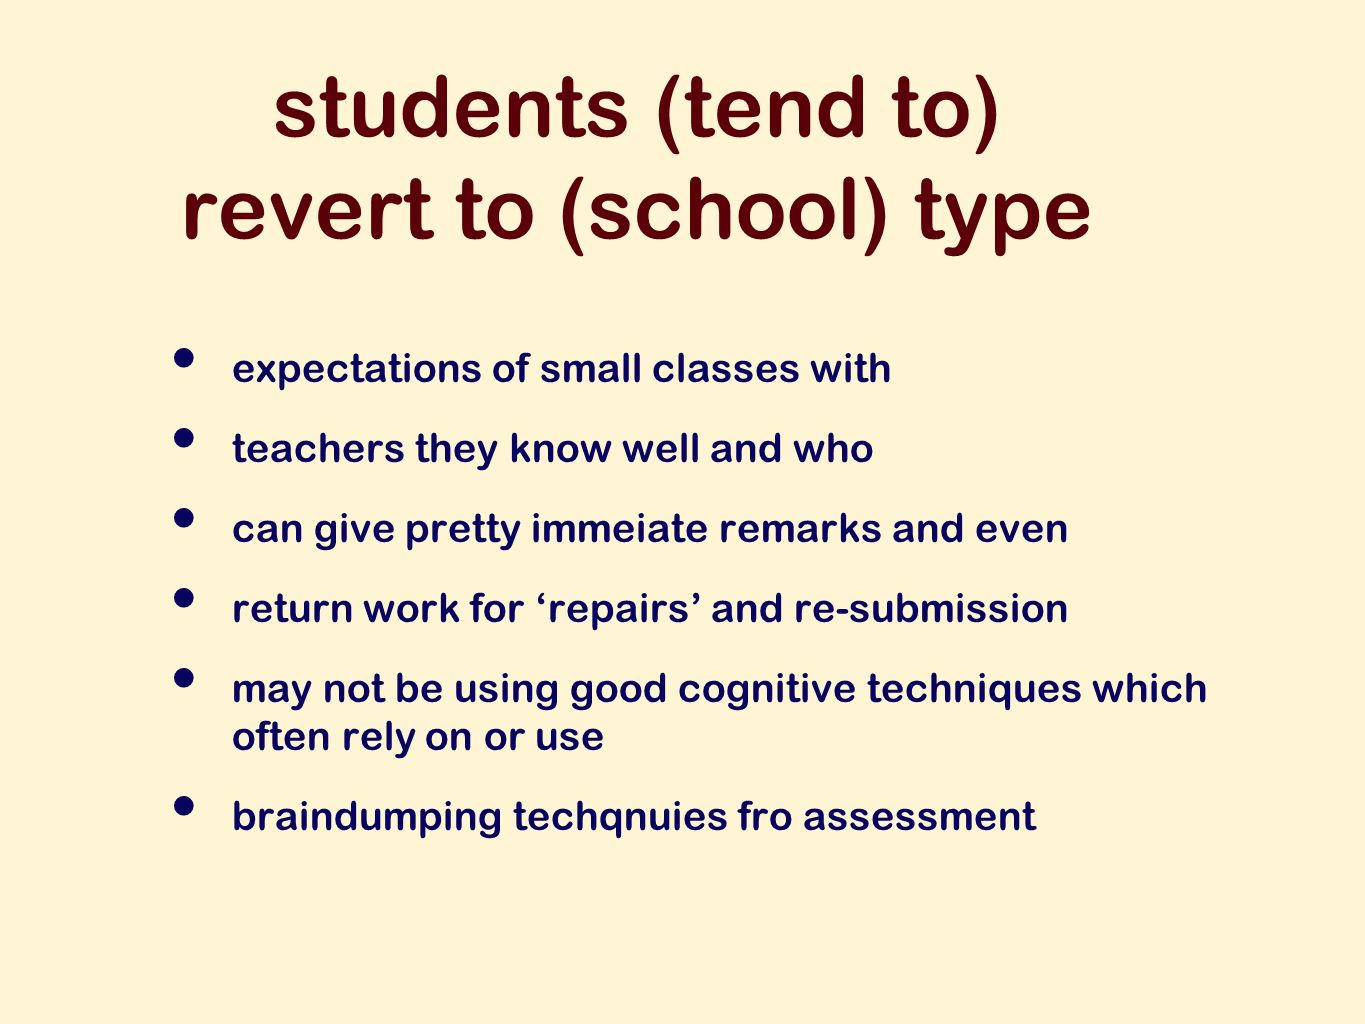 students (tend to) revert to (school) type expectations of small classes with teachers they know well and who can give pretty immeiate remarks and even return work for repairs and re-submission may not be using good cognitive techniques which often rely on or use braindumping techqnuies fro assessment